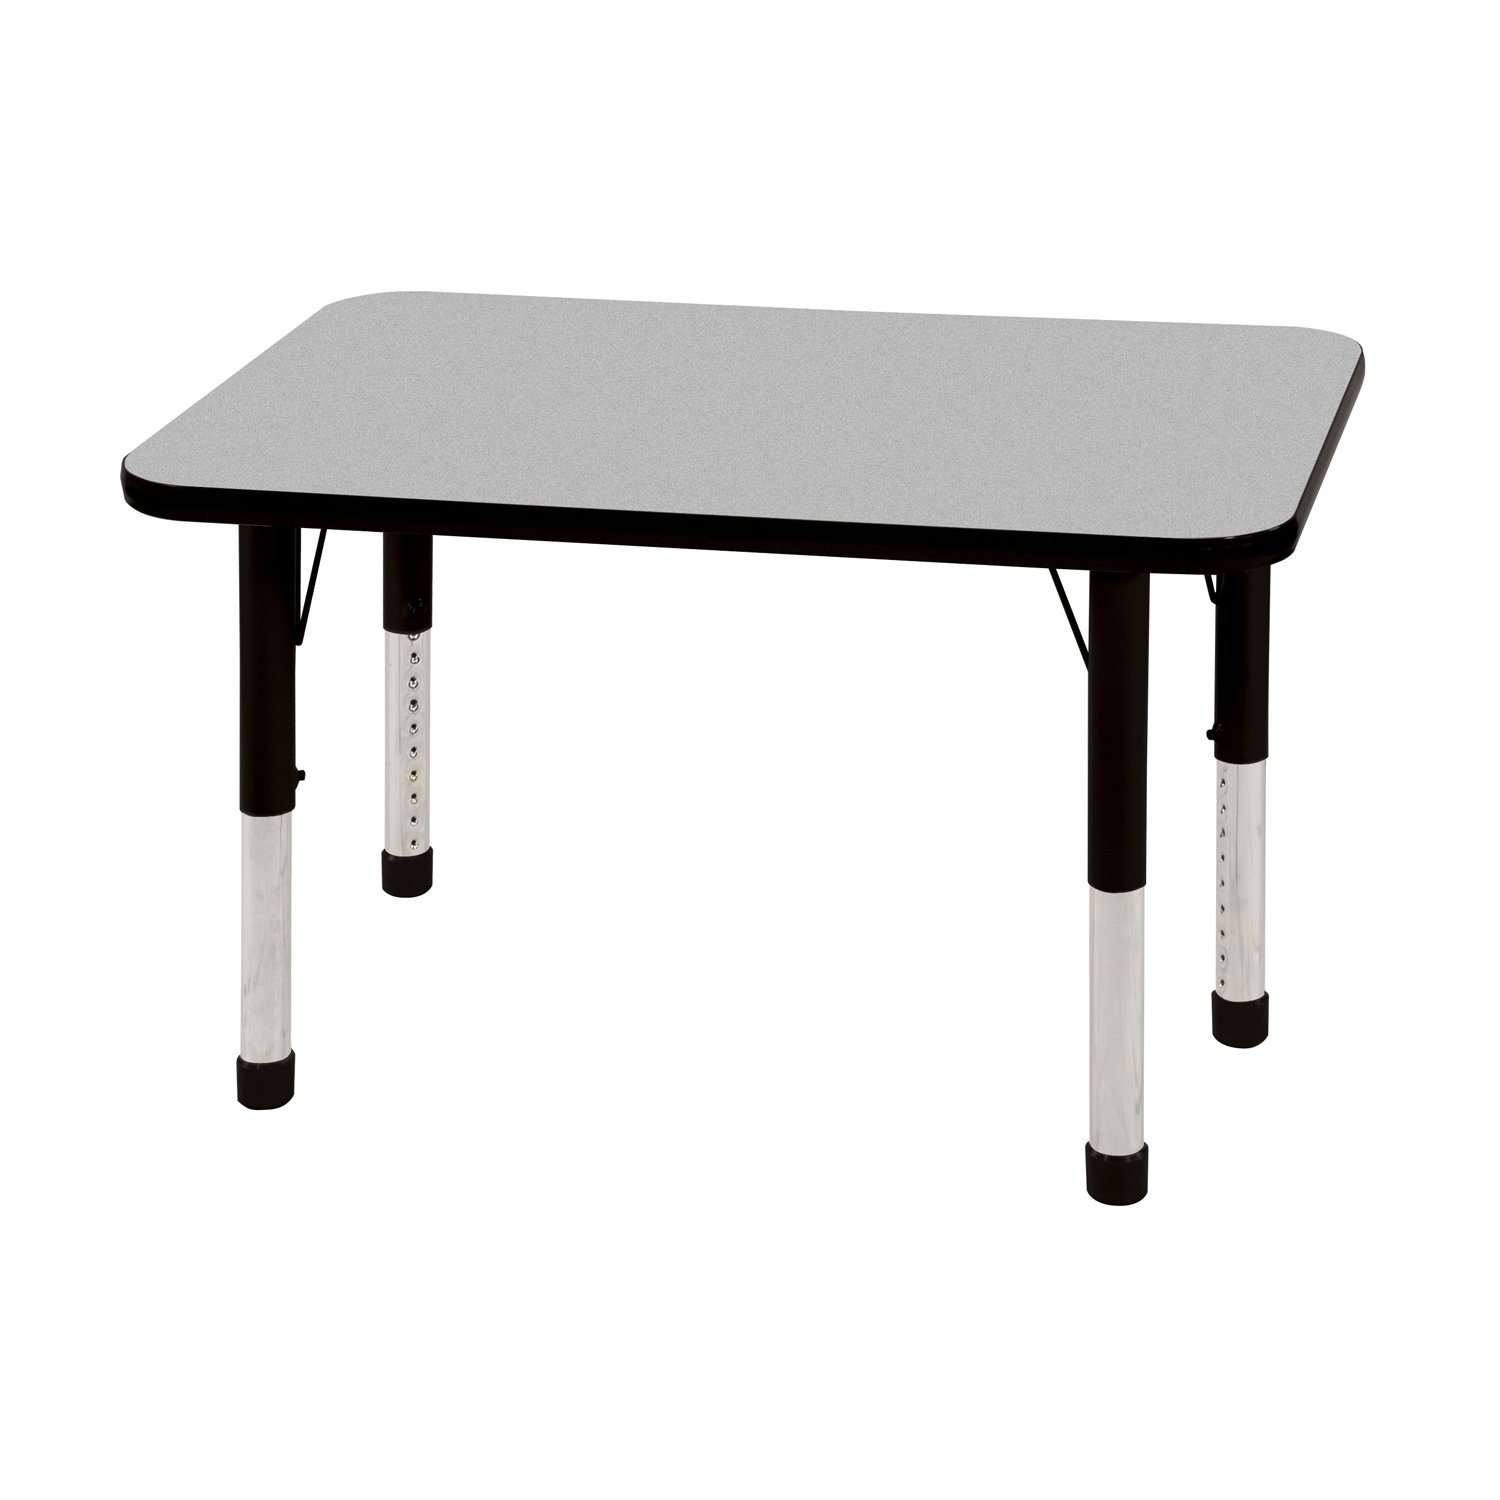 ECR4Kids T-Mold 24'' x 36'' Rectangular Activity School Table, Chunky Legs, Adjustable Height 15-24 inch (Grey/Black)